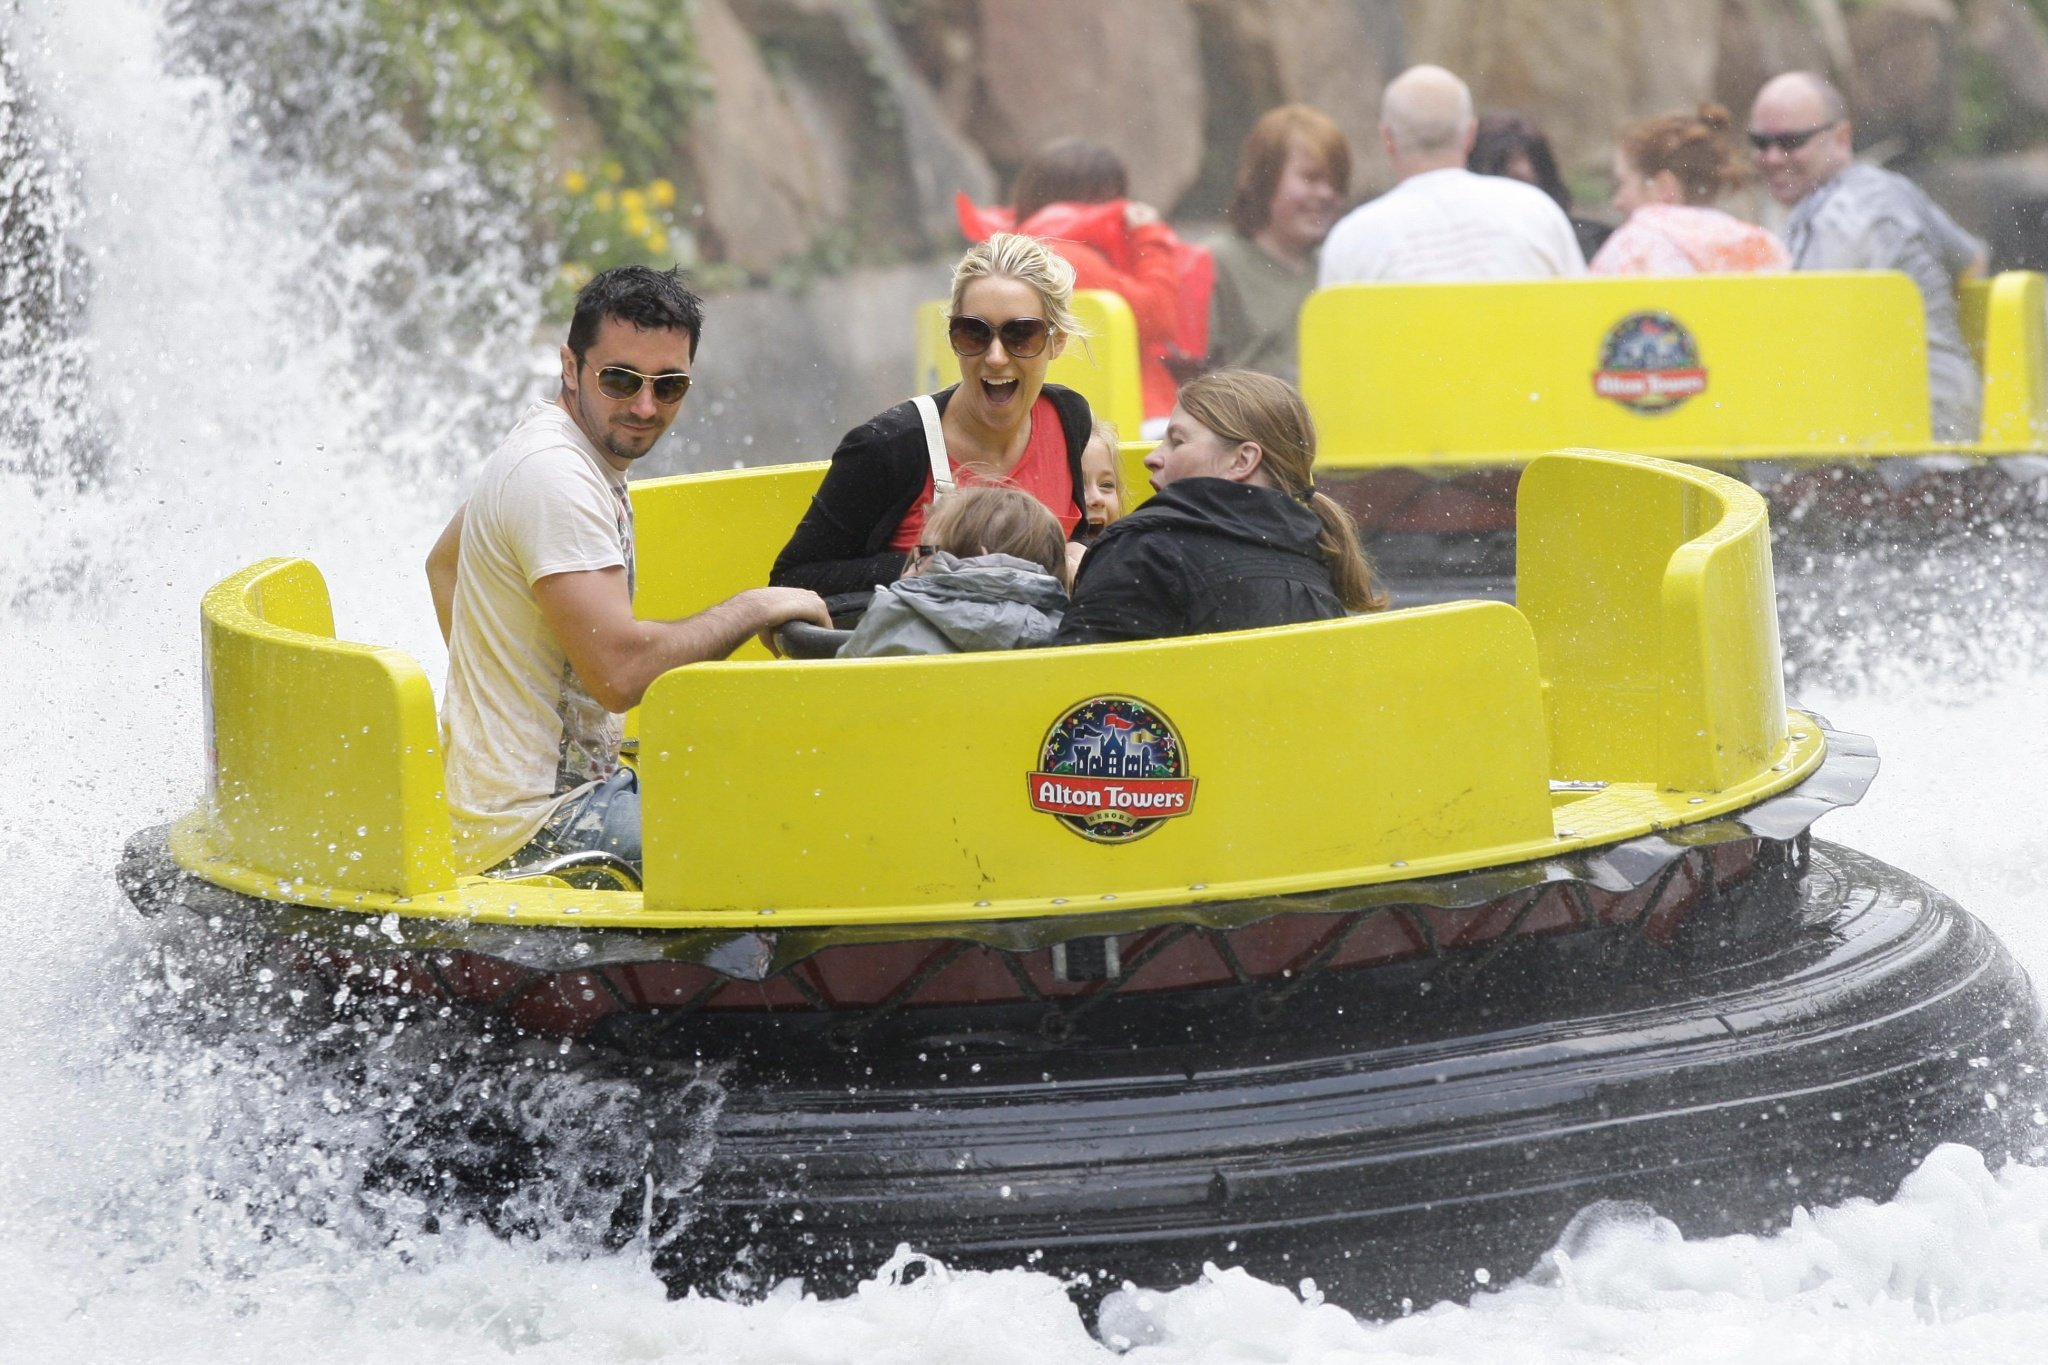 nti Alton Towers rapids